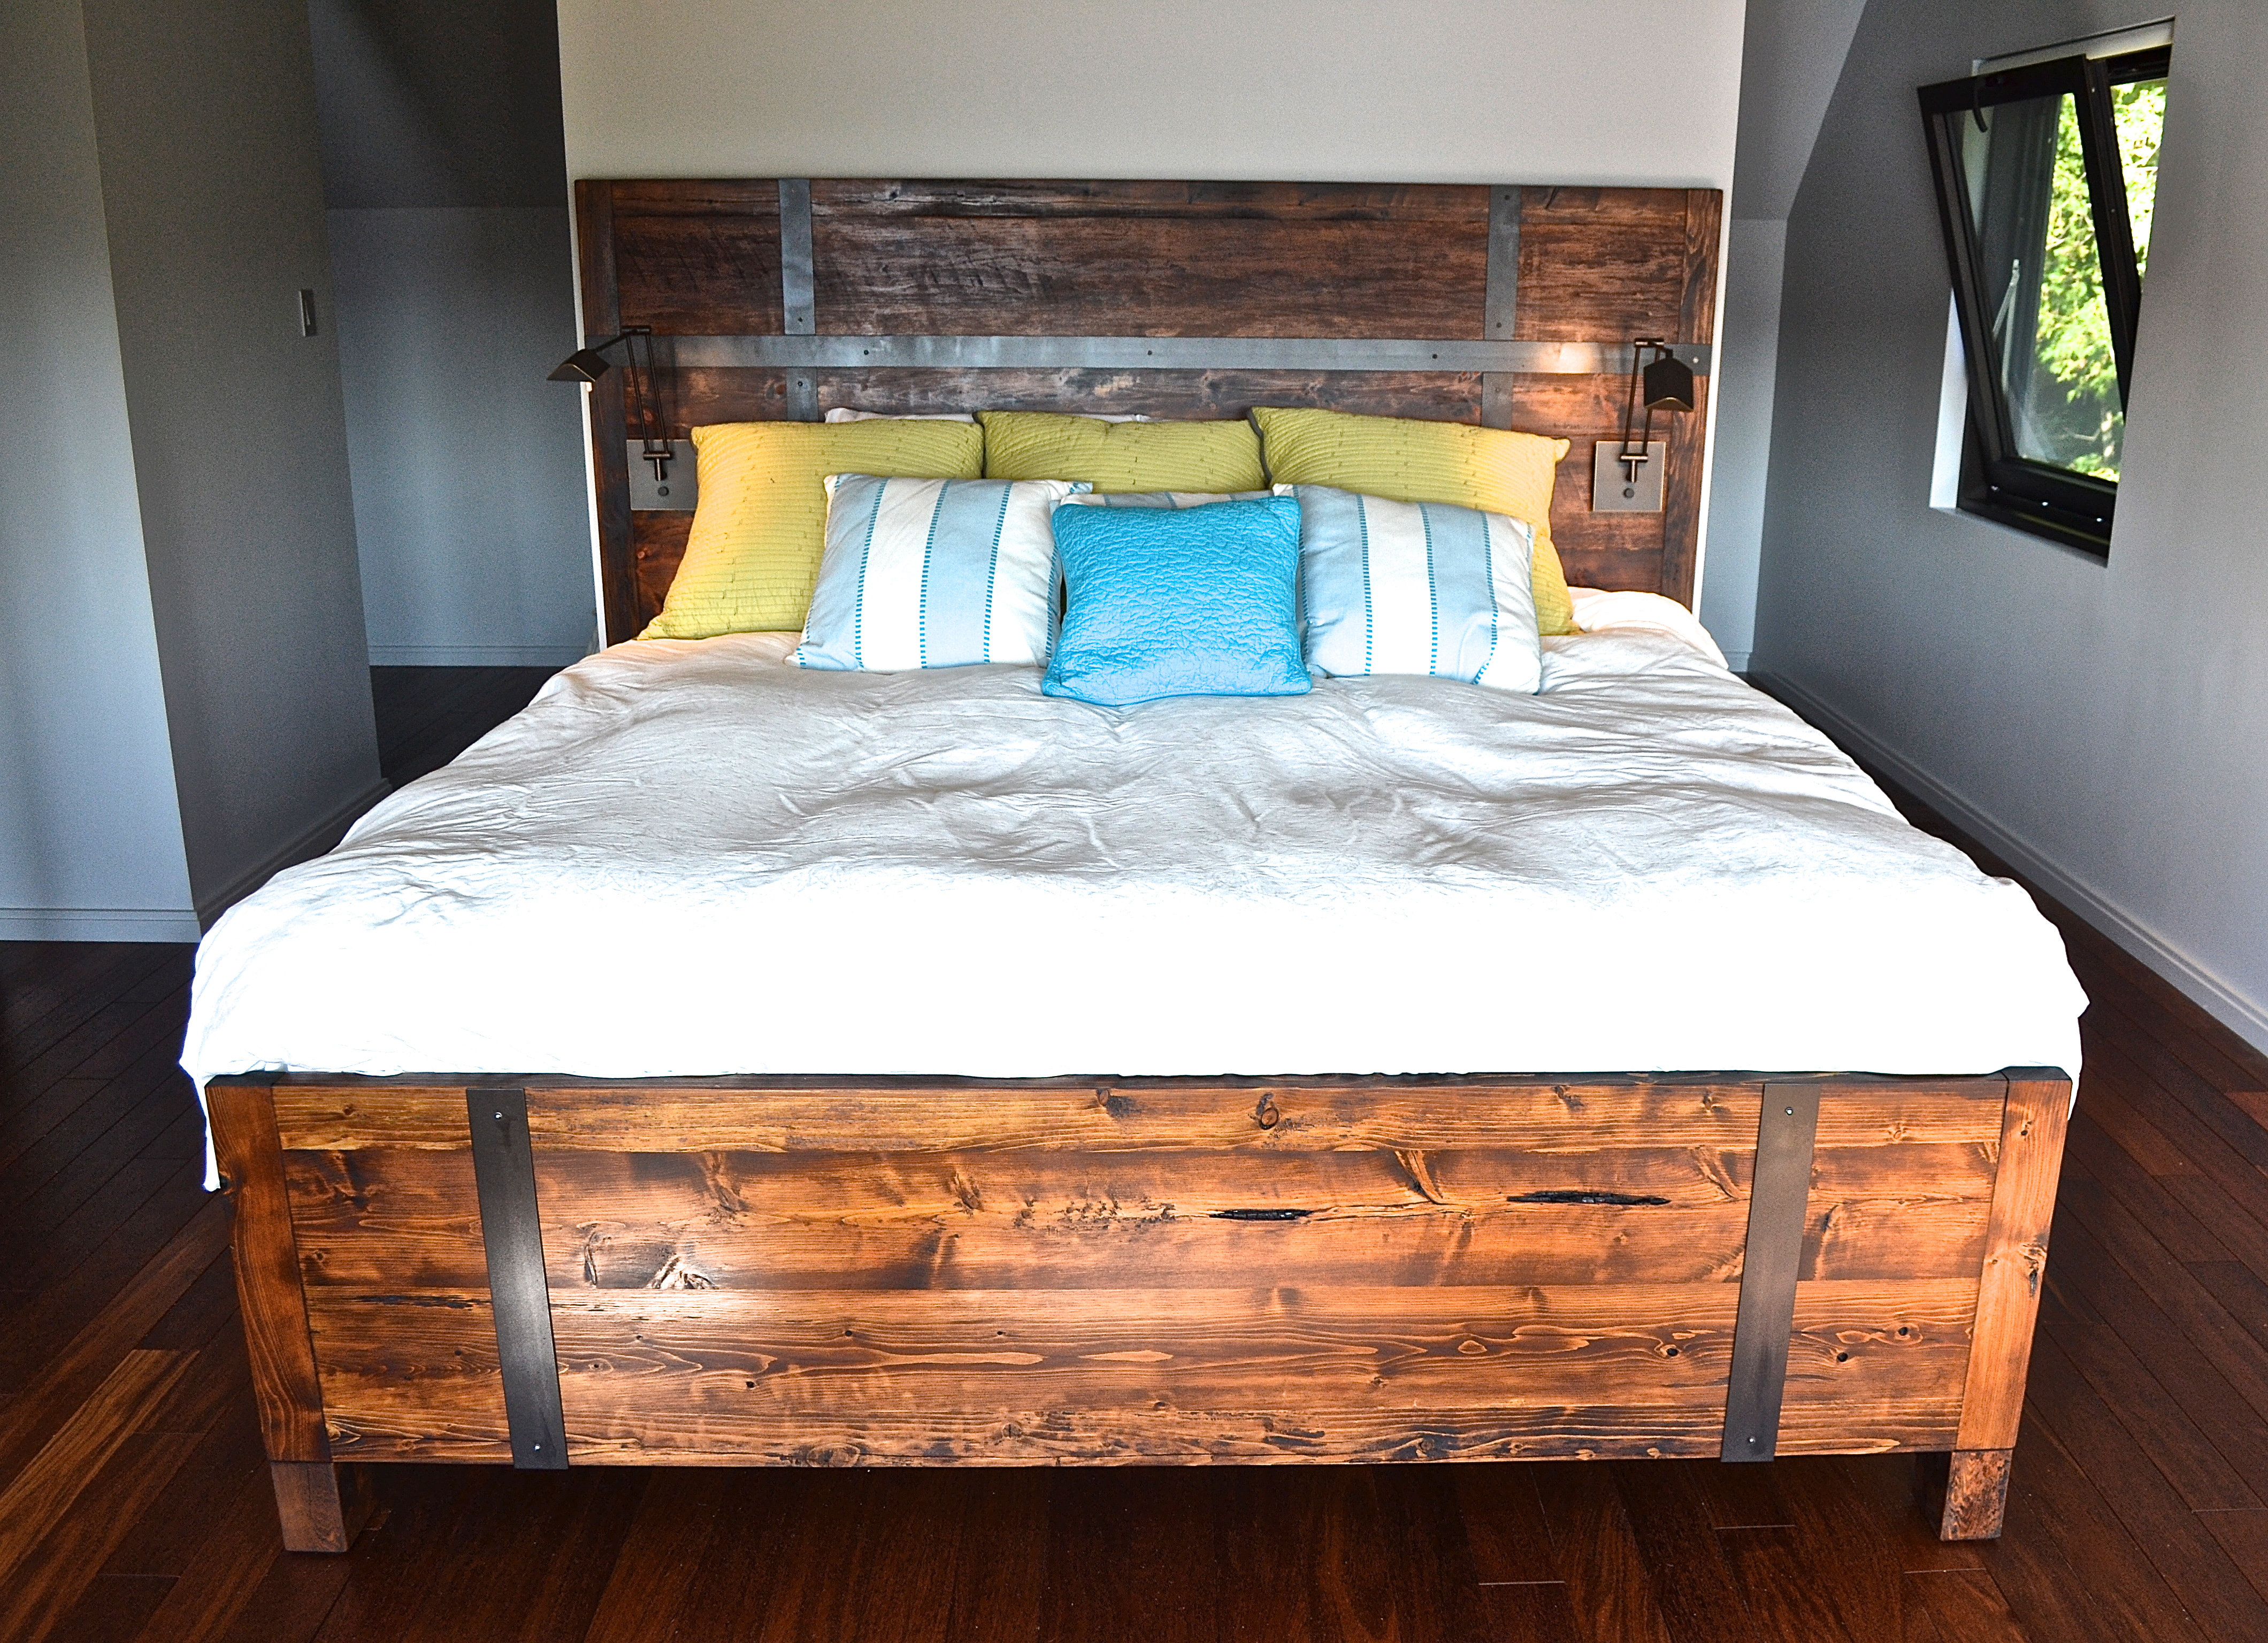 Built-in reclaimed pine bed